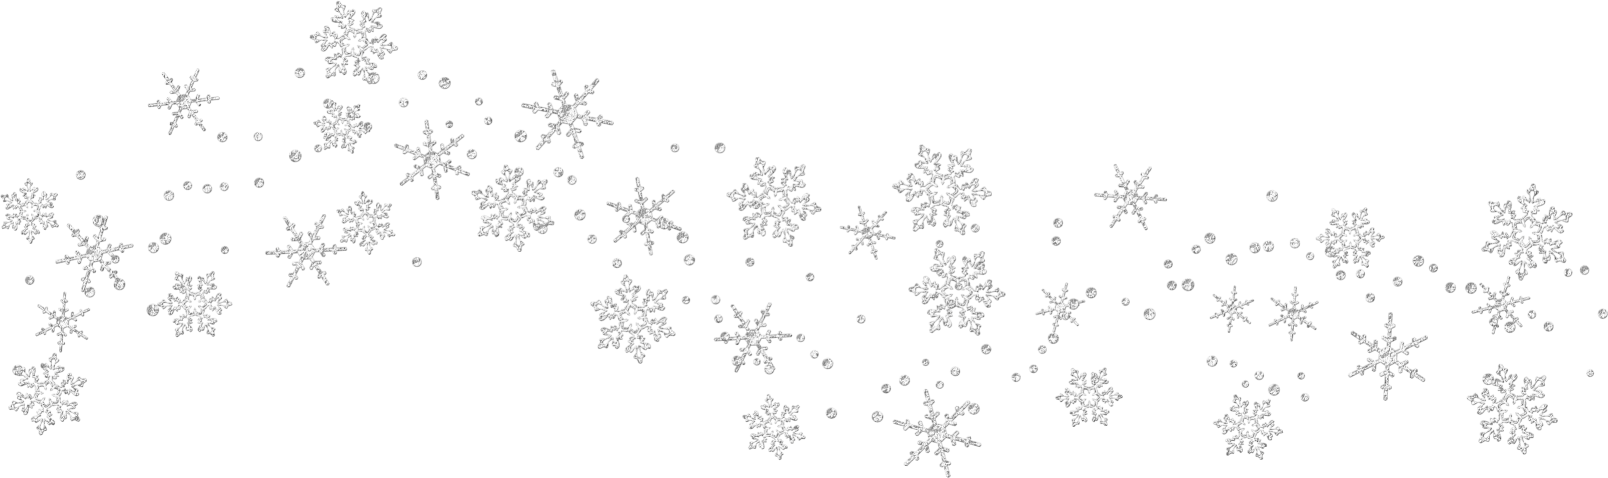 Woodbury public library transparent. Clipart snowflake city